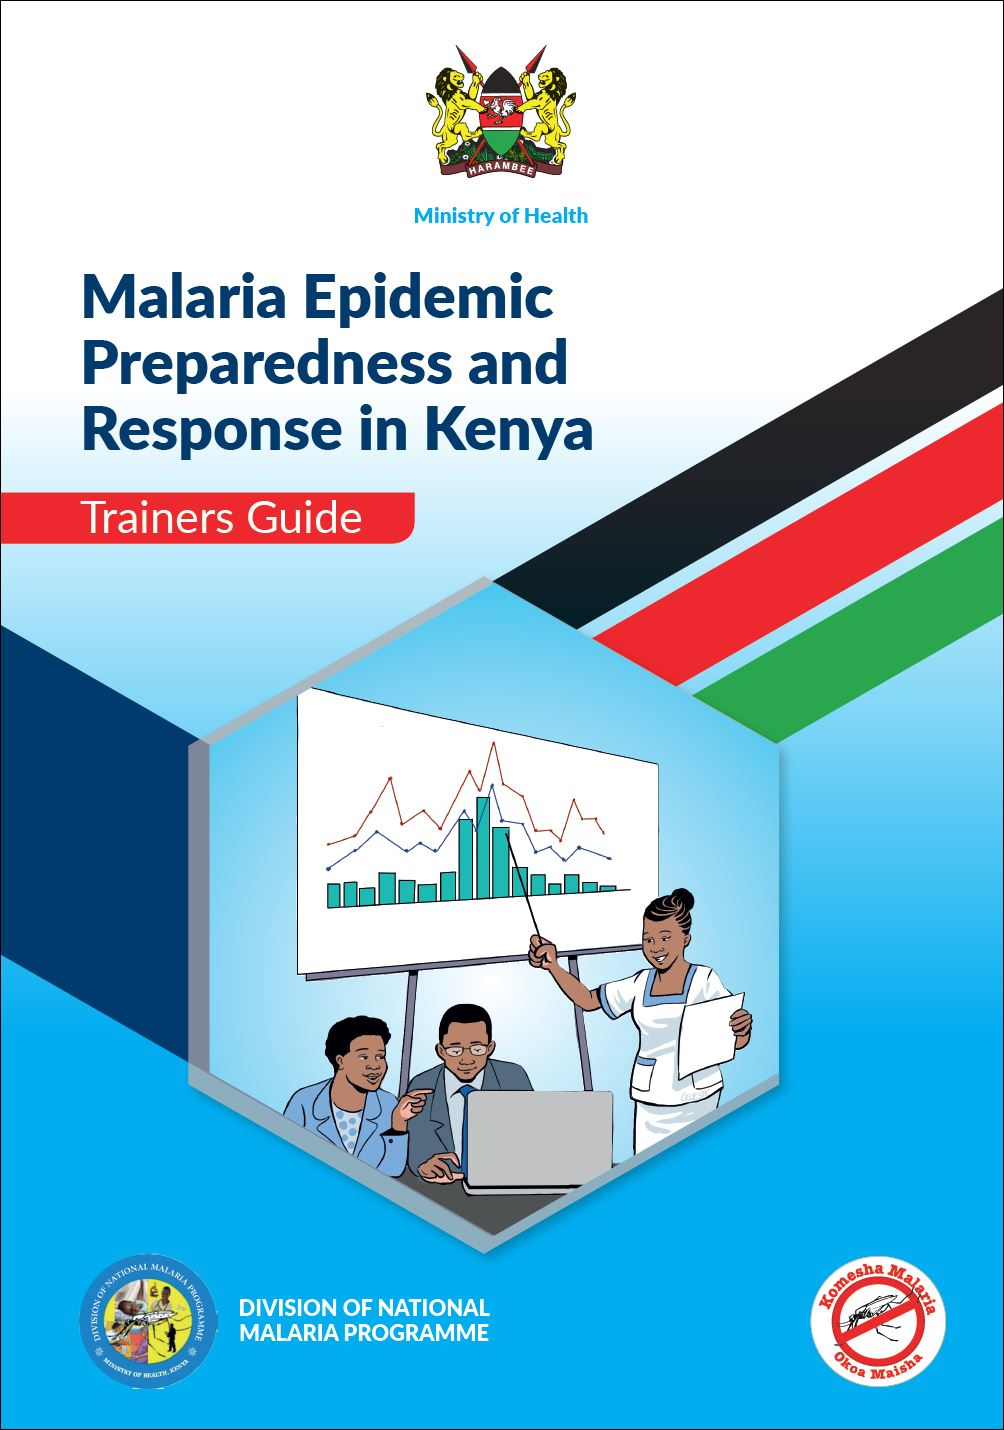 Malaria Epidemic Preparedness and Response in Kenya: Trainers Guide